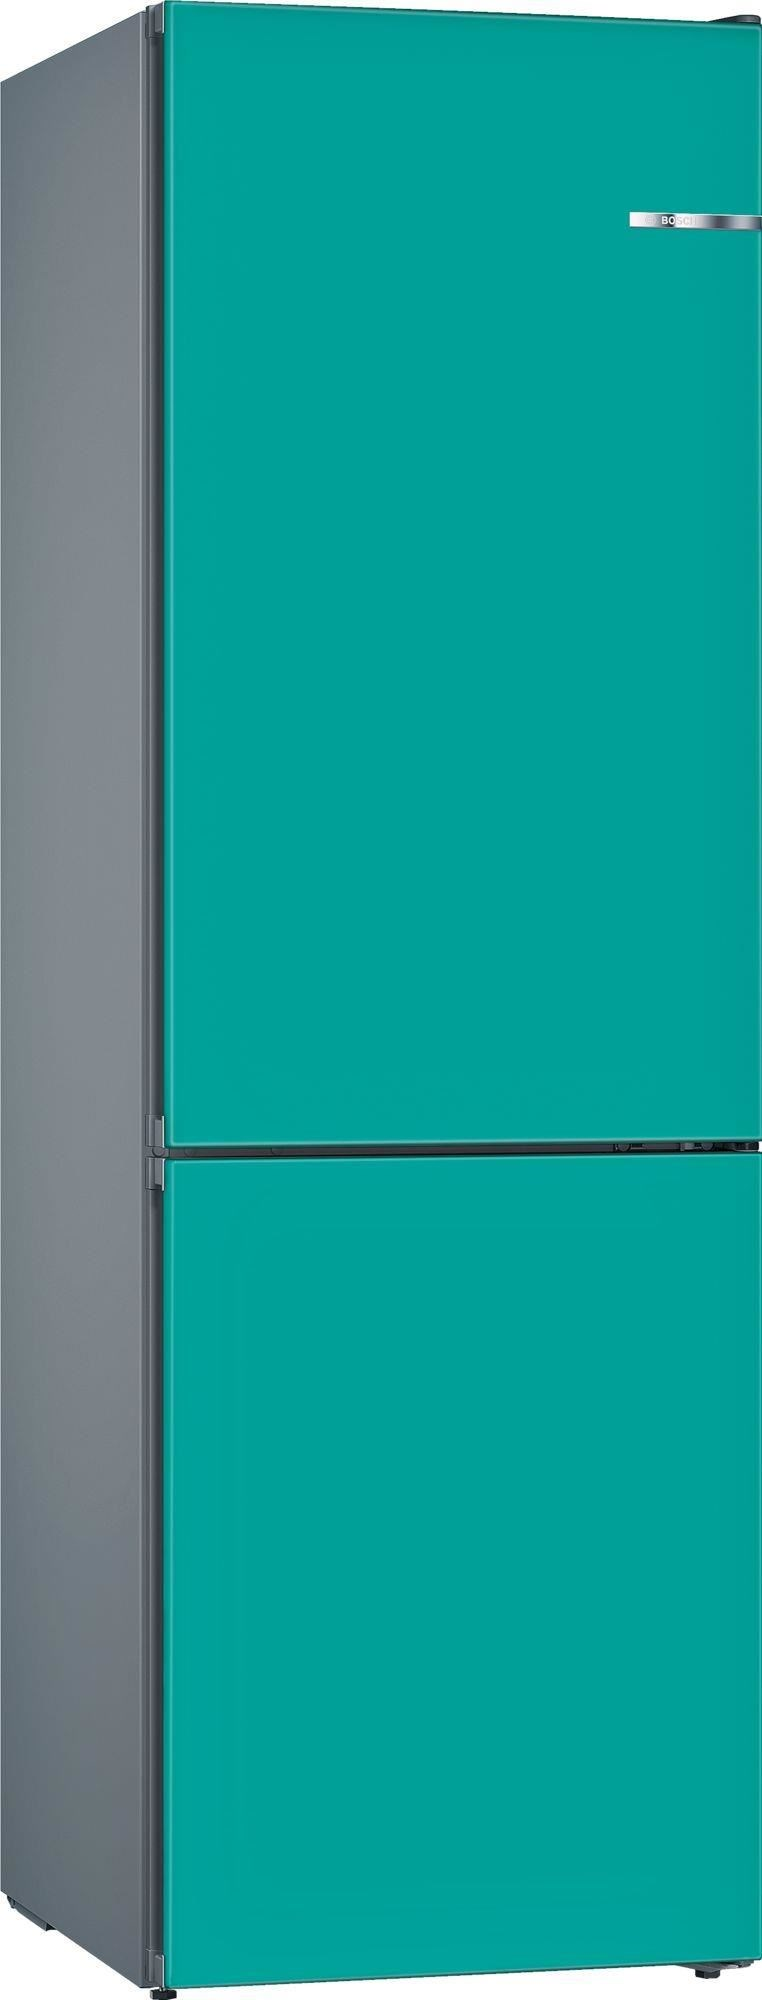 bosch kvn39ia4a k hl gefrierkombination aqua t rkis fridges freezers computeruniverse. Black Bedroom Furniture Sets. Home Design Ideas